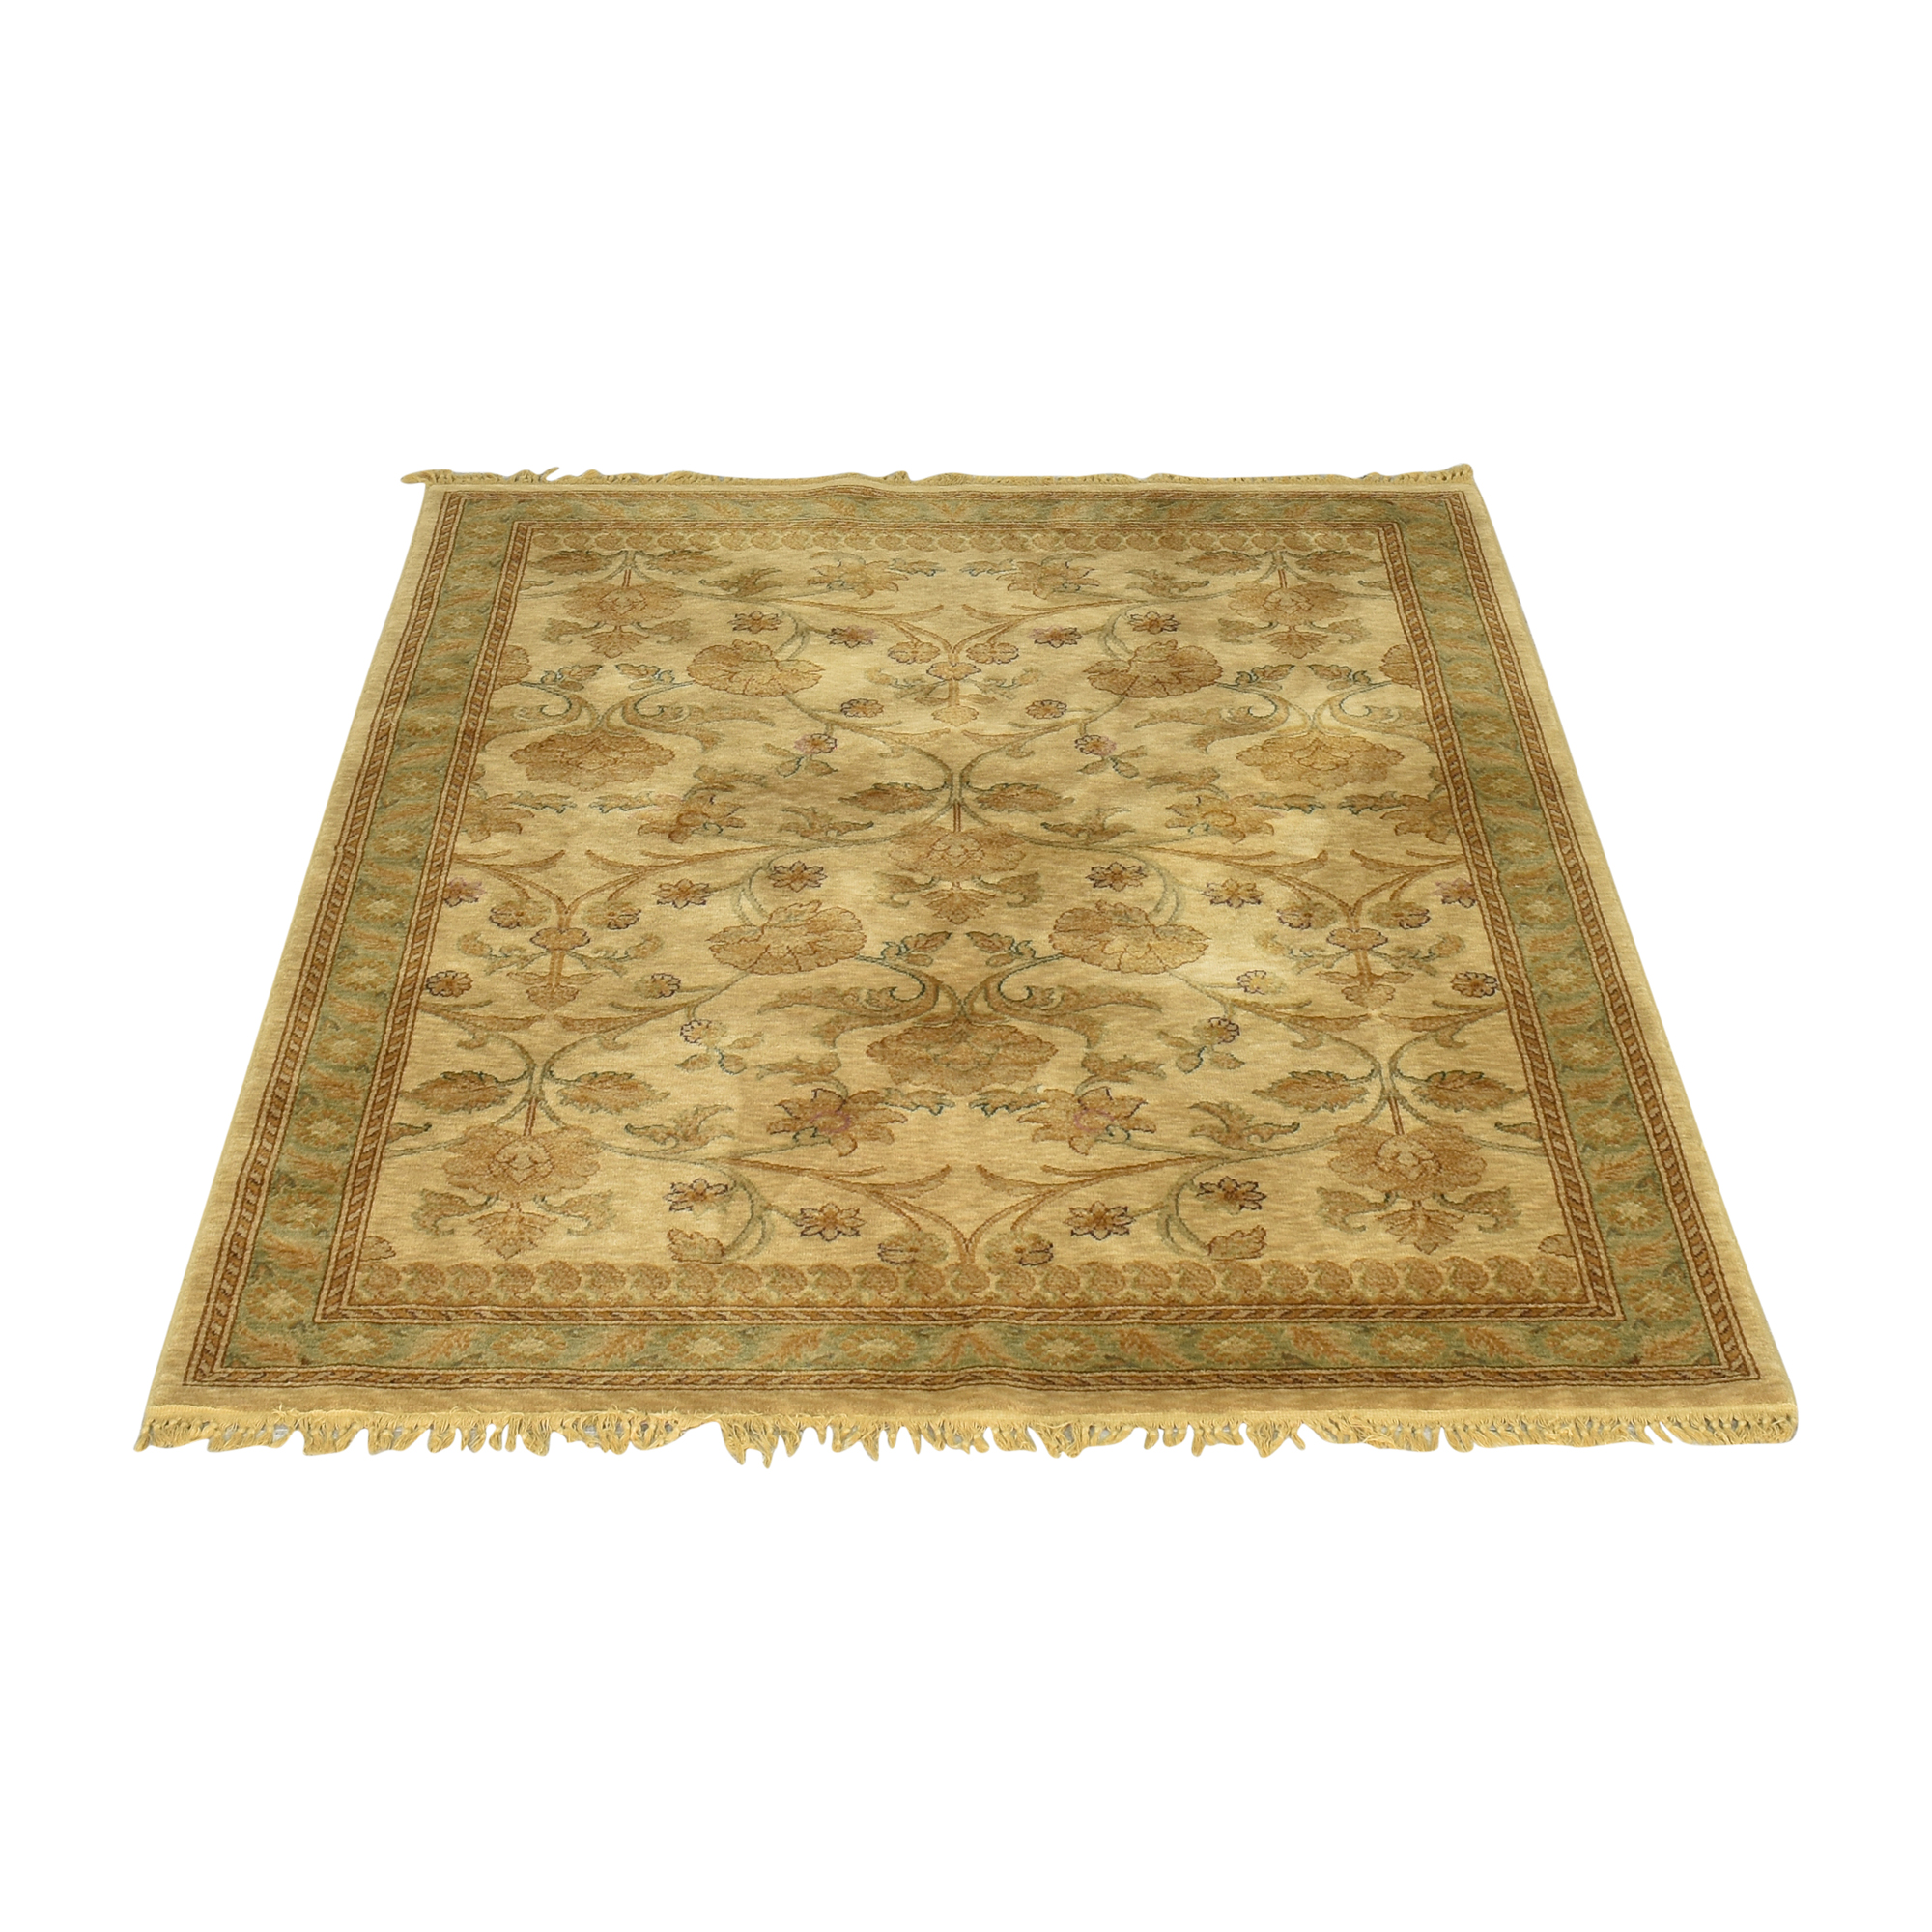 Ethan Allen Antique Traditions Area Rug / Rugs